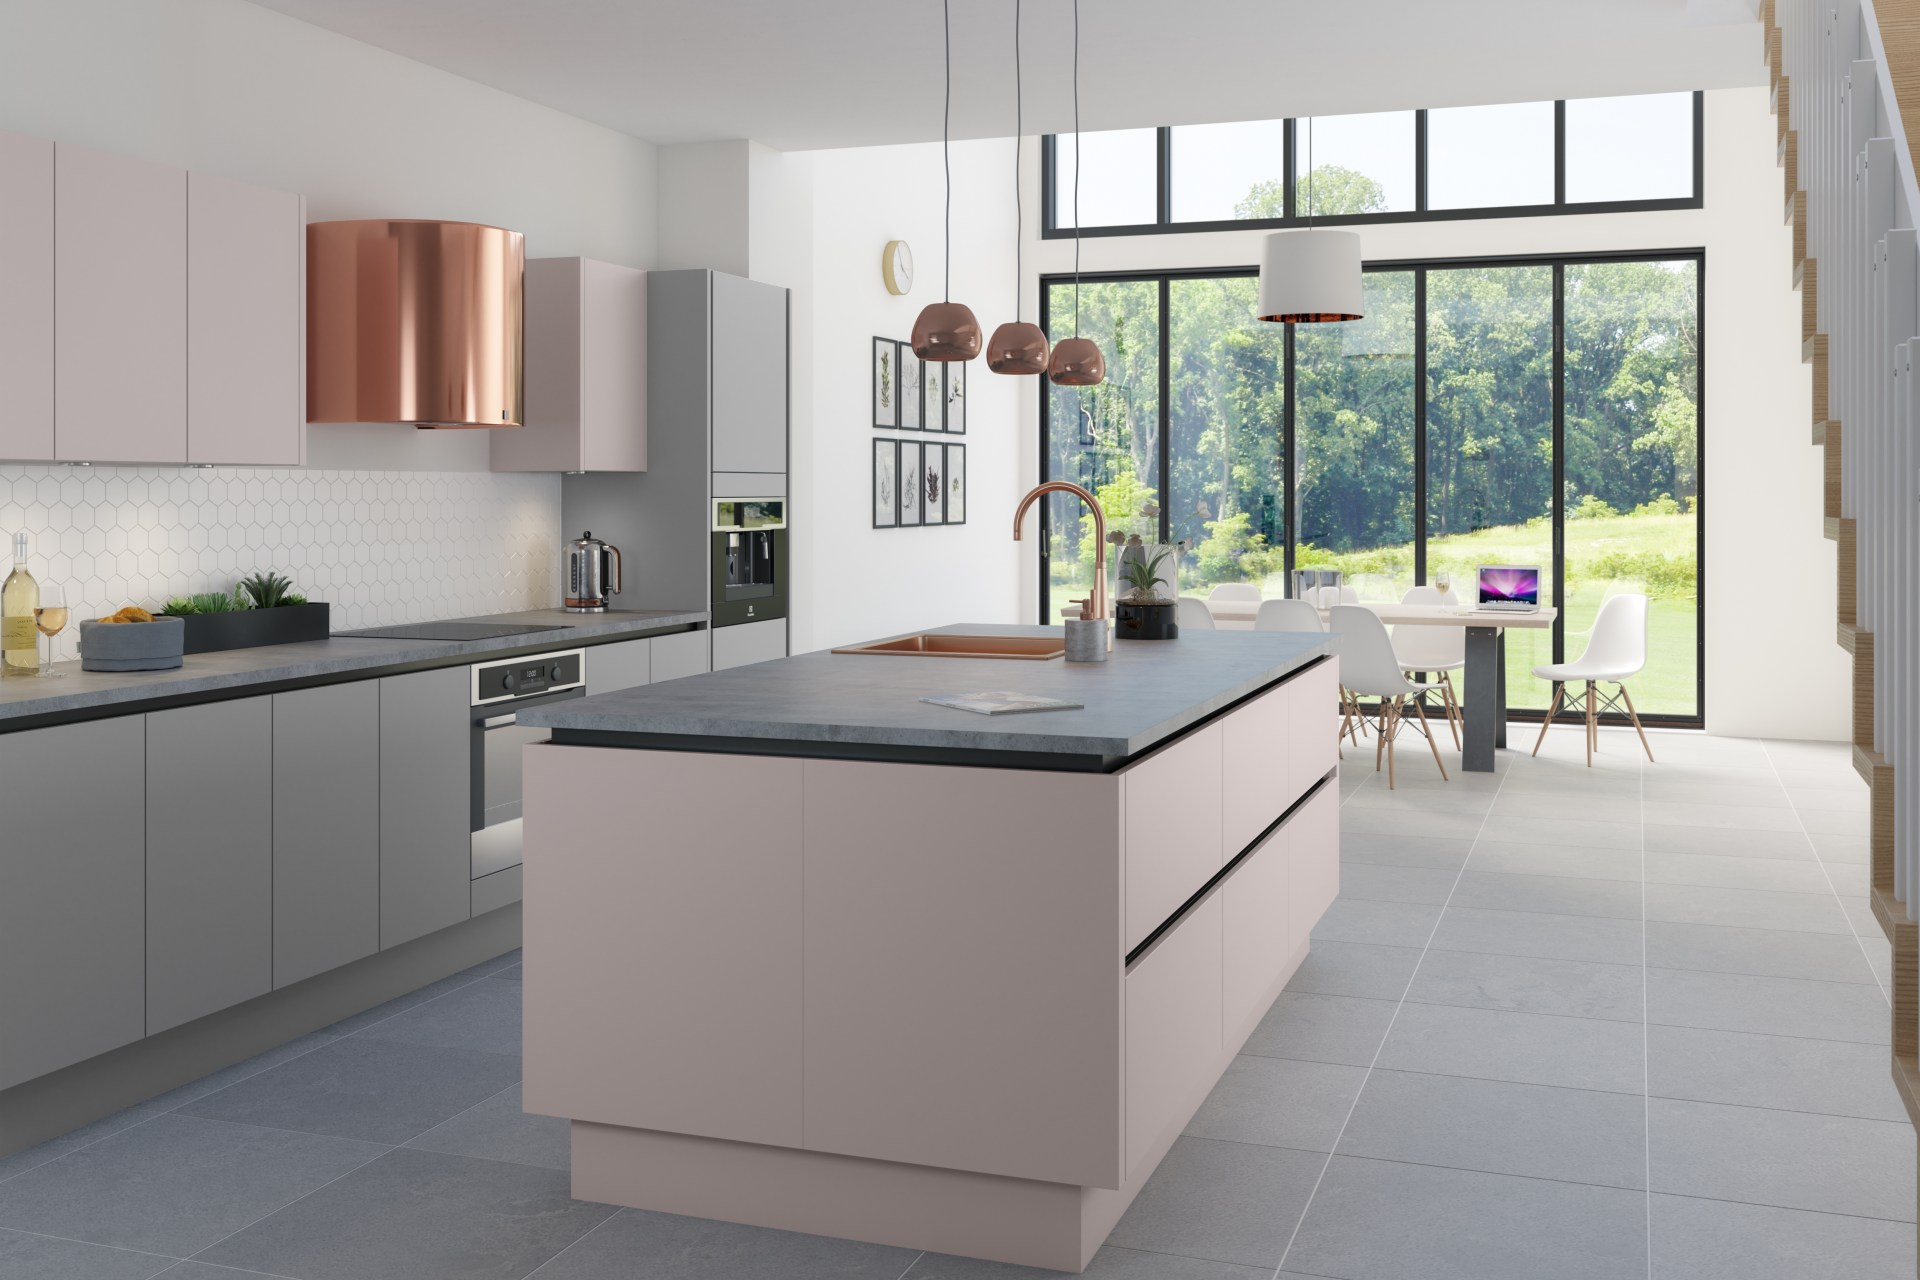 Integra Soho by Magnet. Ultra contemporary design with sleek handless doors and available in 20 different colours.